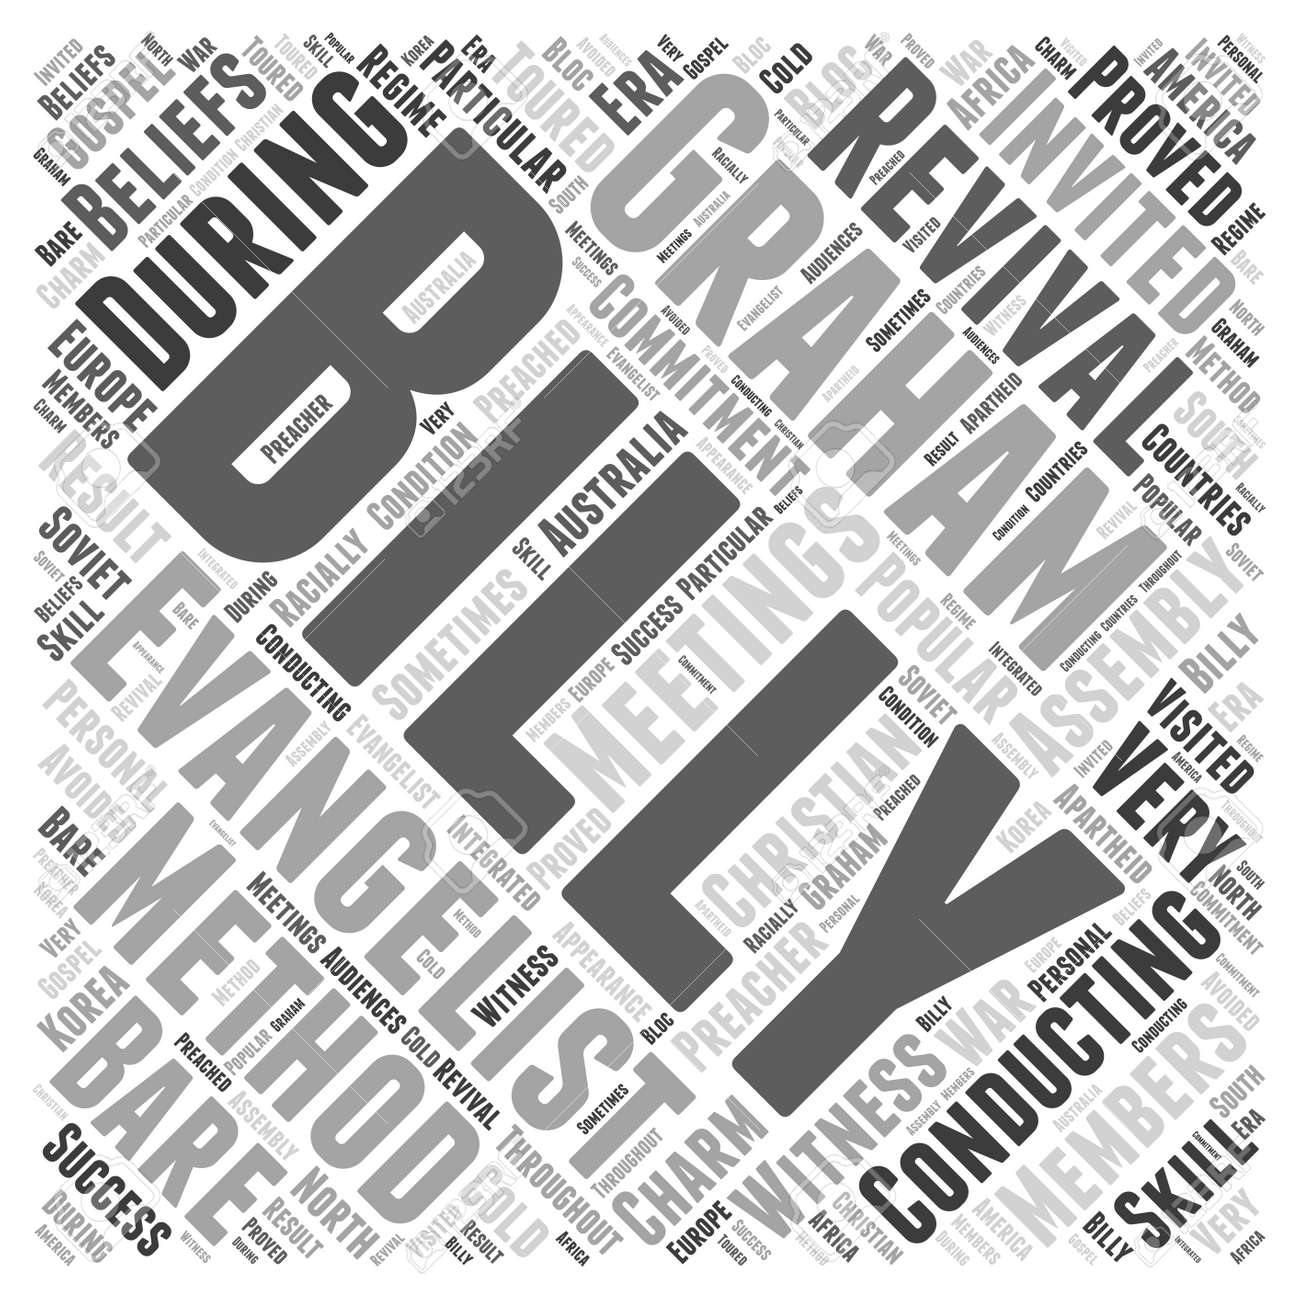 billy graham Word Cloud Concept - 72921117